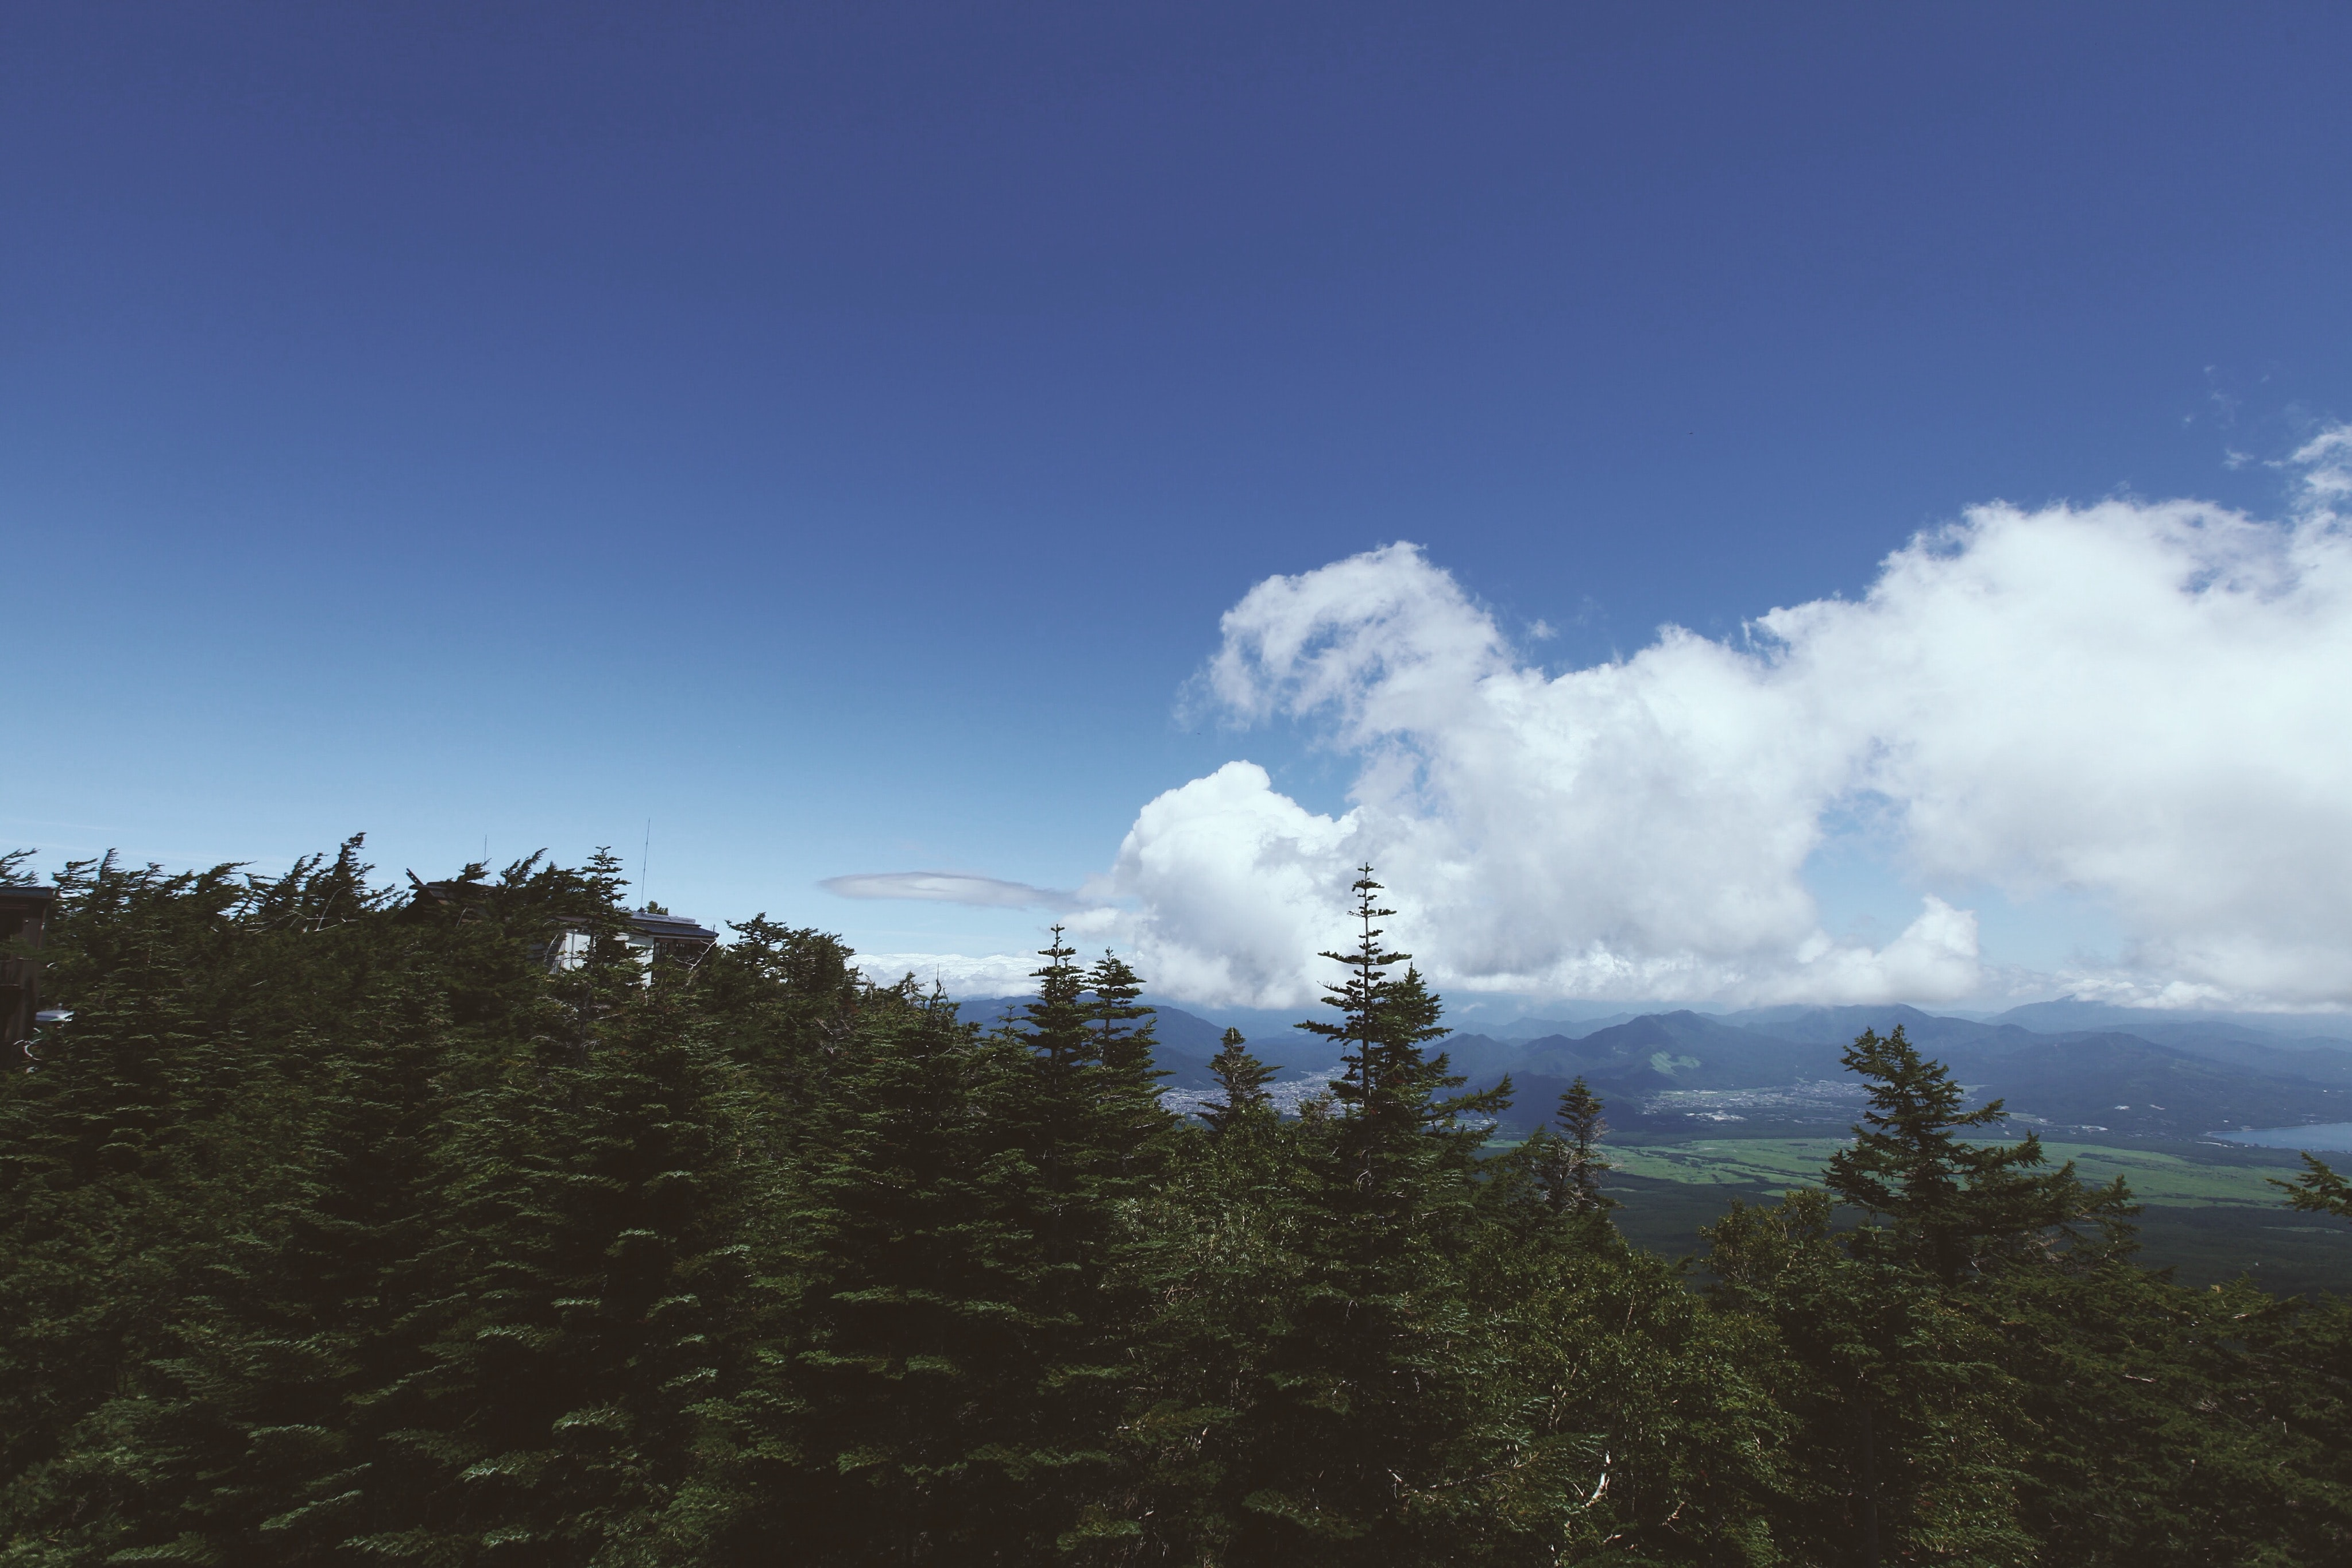 An evergreen forest obscuring the view on a mountain valley under fluffy clouds